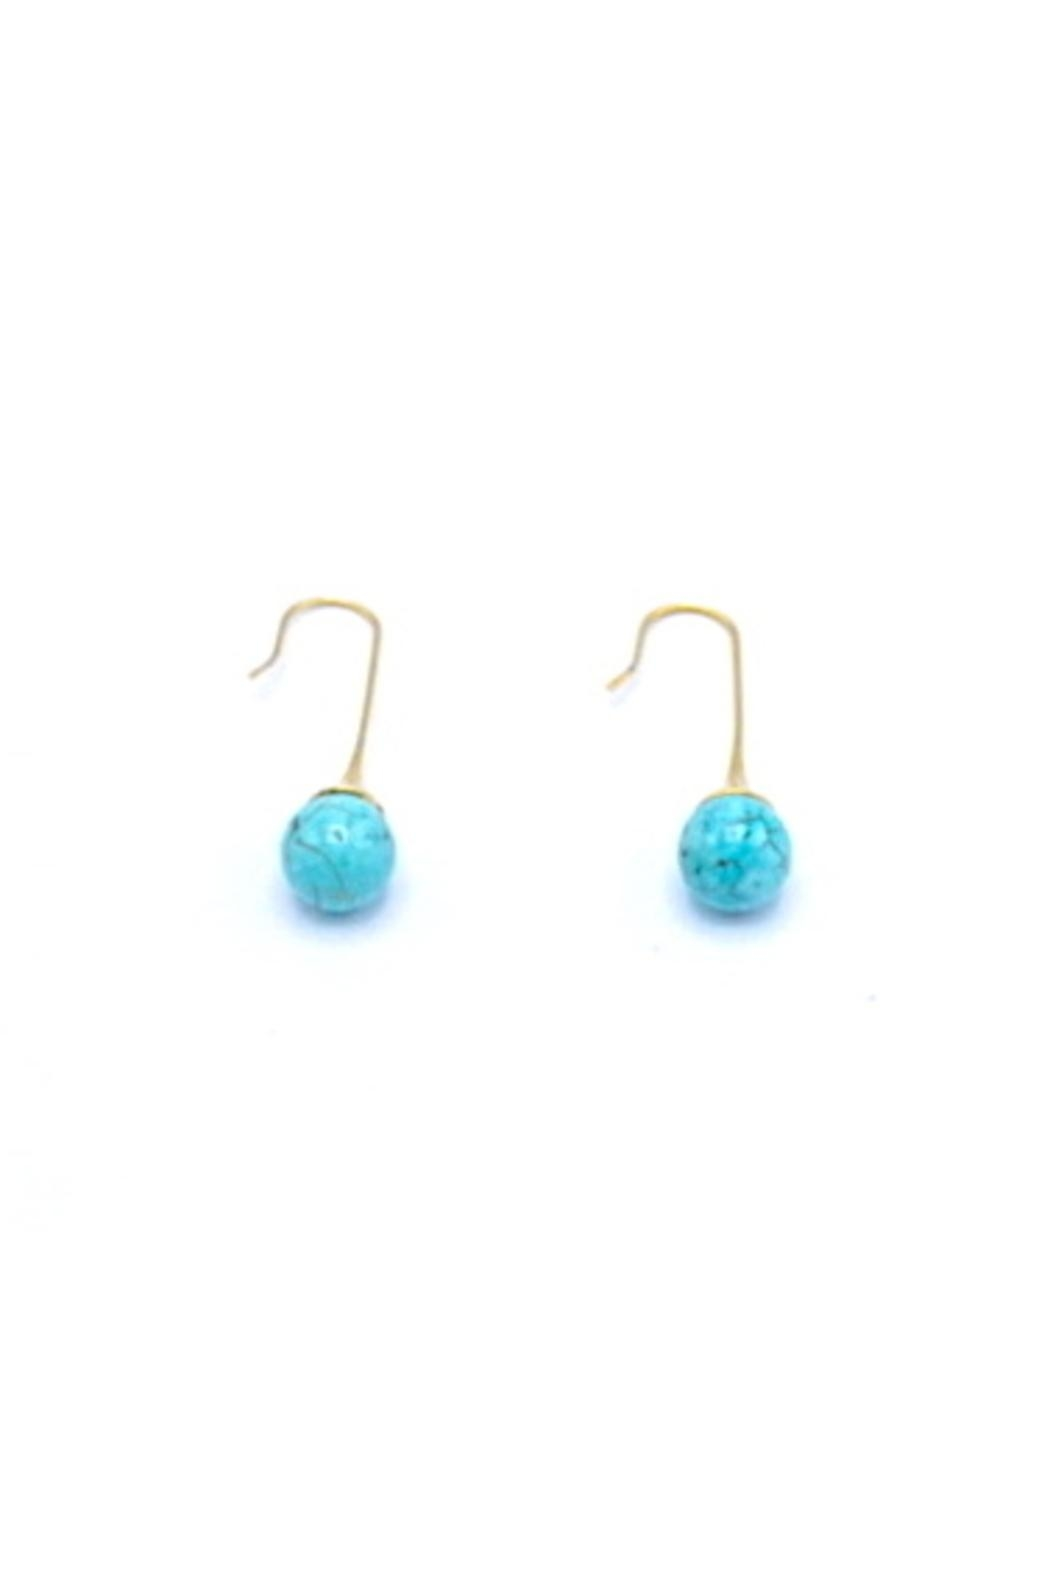 products image breon llc product stone tassel natural blue bbb jovon earrings